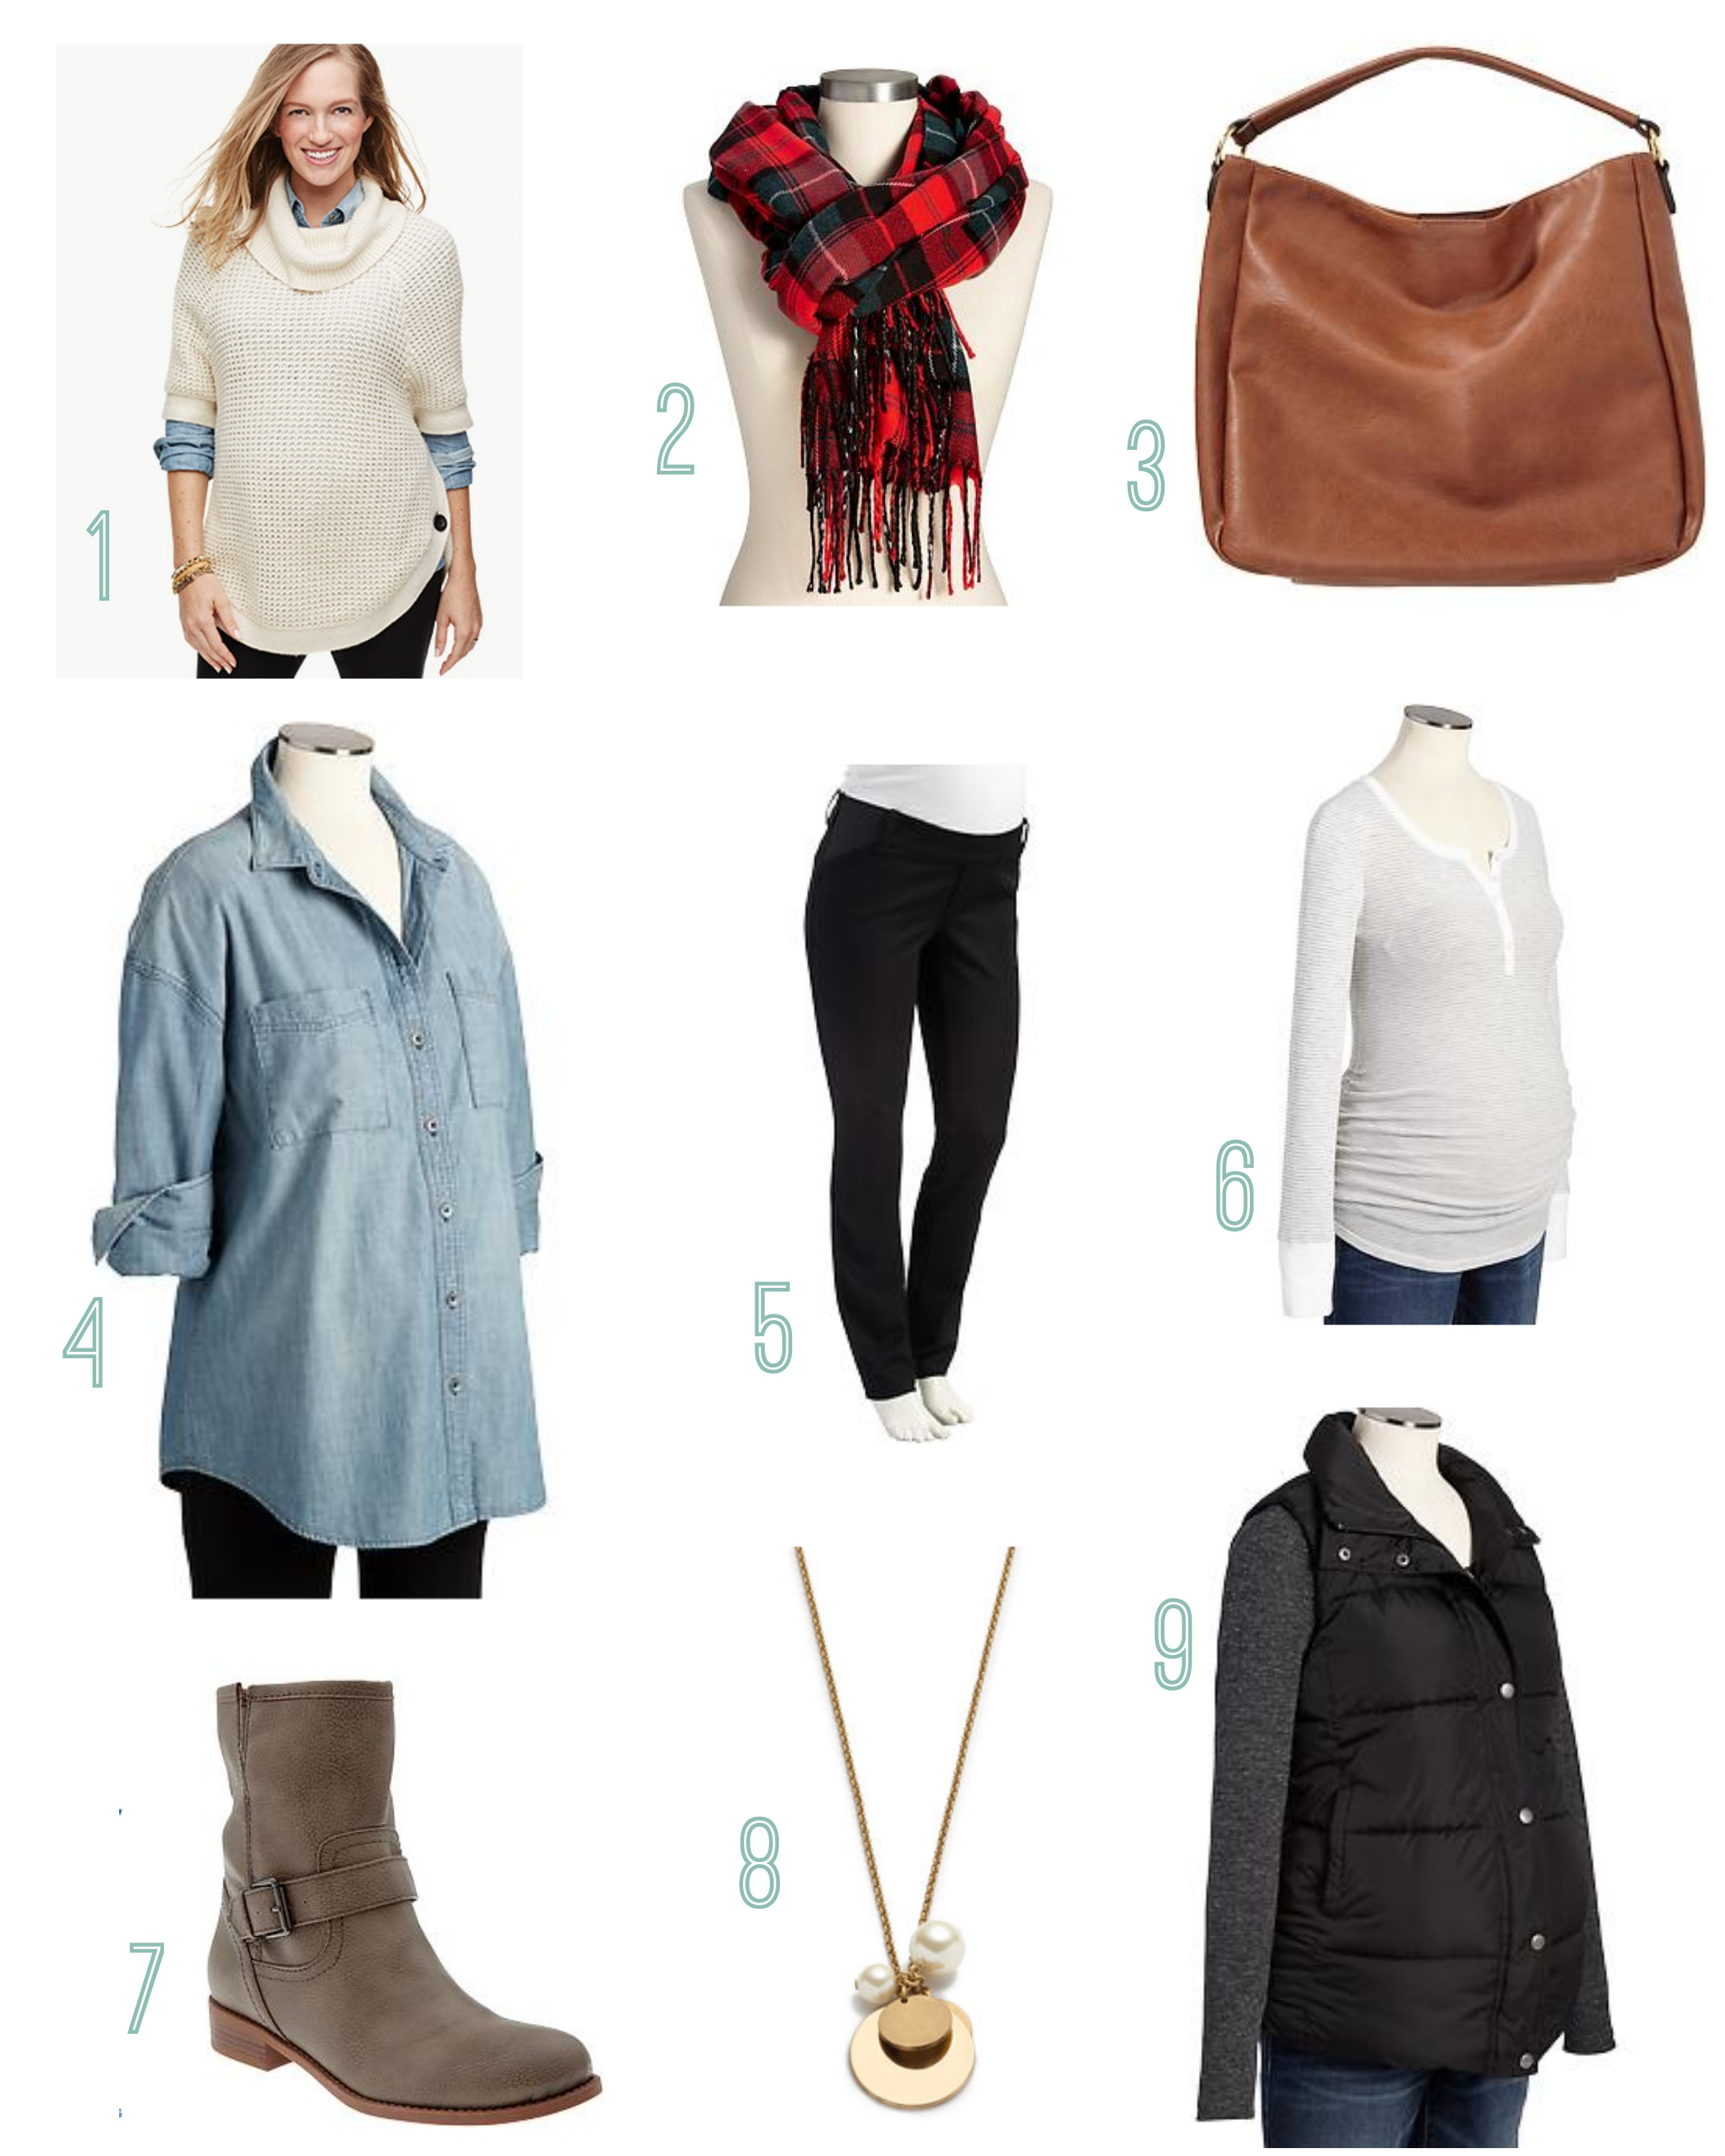 bcabbe81a Fall Rustic Maternity Outfits - Rustic Baby Chic